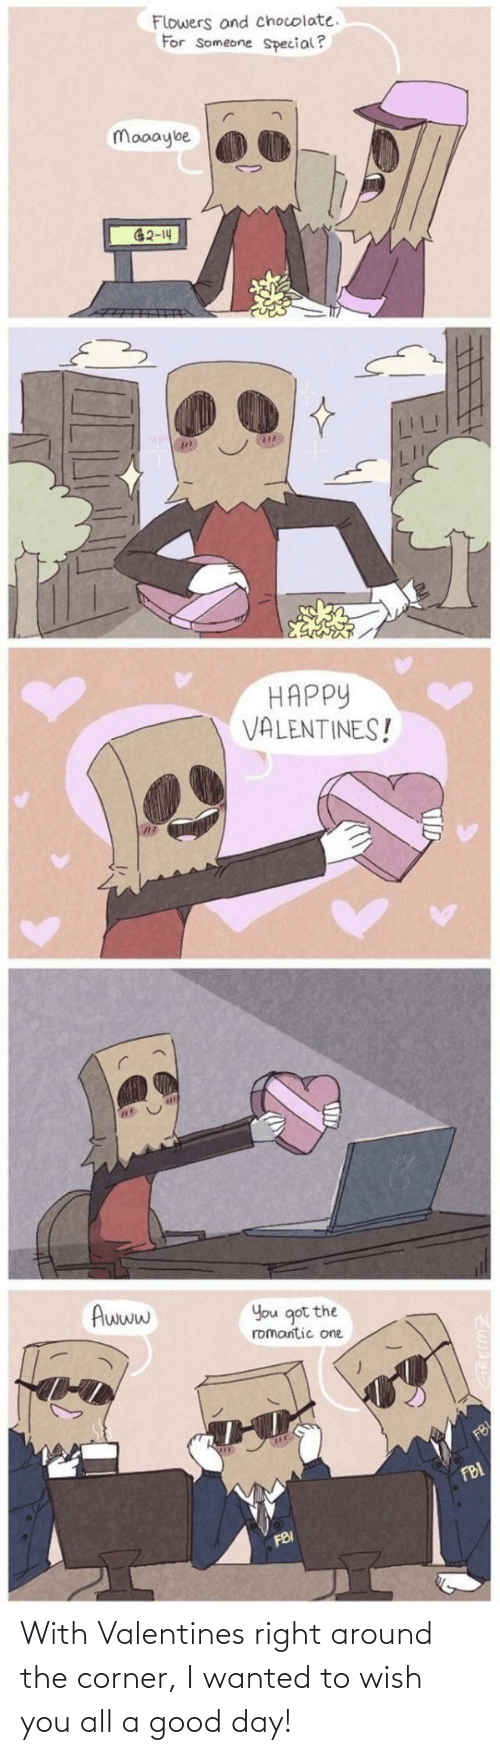 Corner: With Valentines right around the corner, I wanted to wish you all a good day!